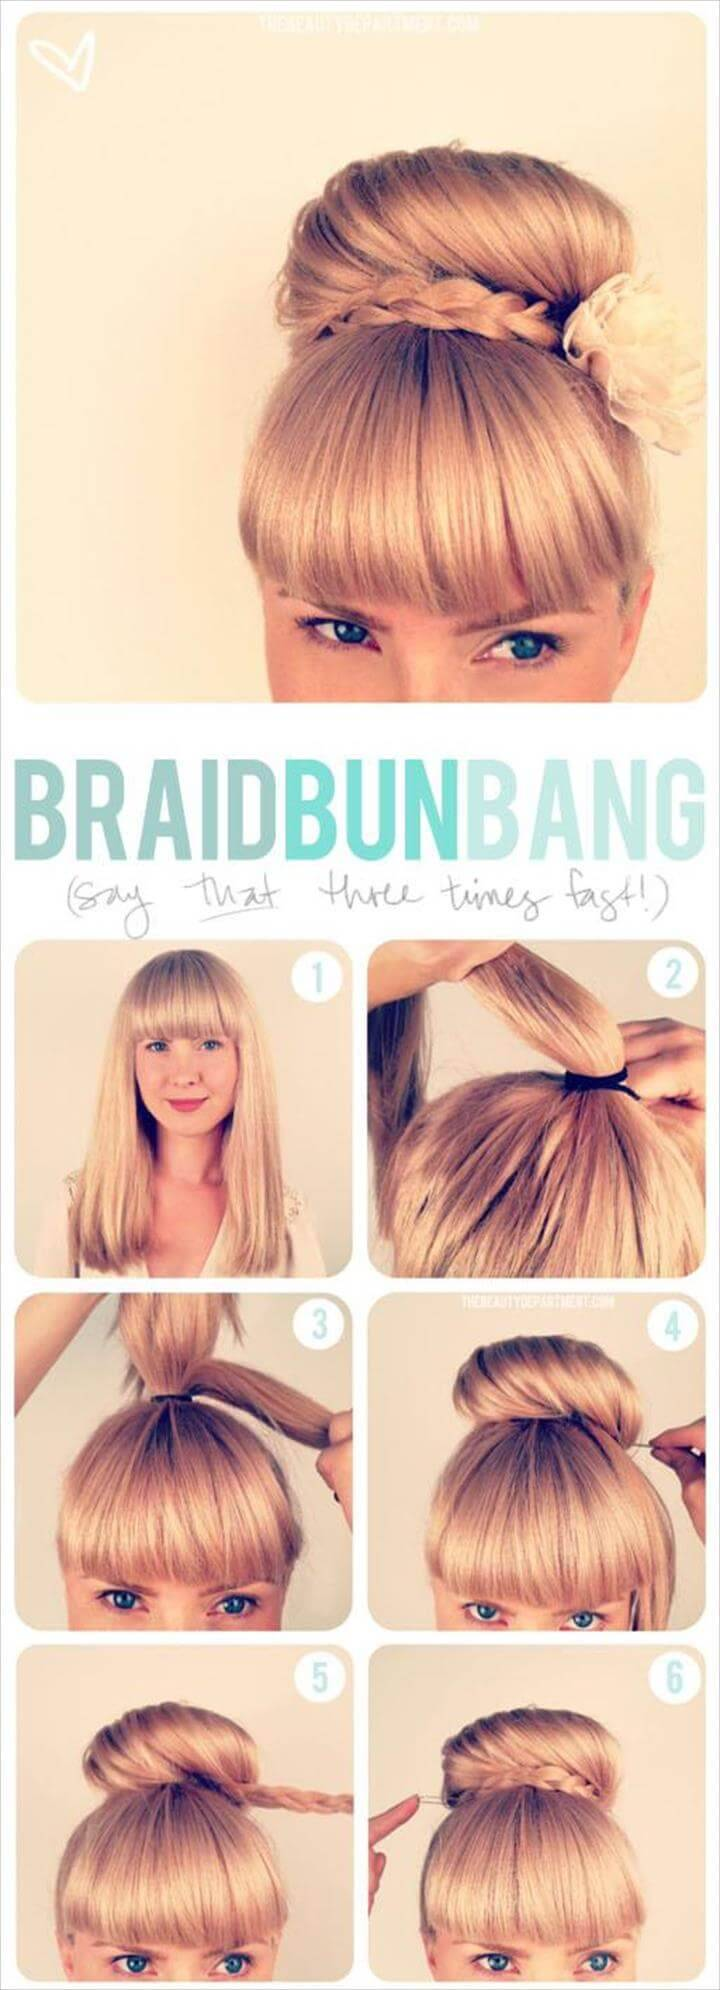 cute braid updo bun bang hairstyle